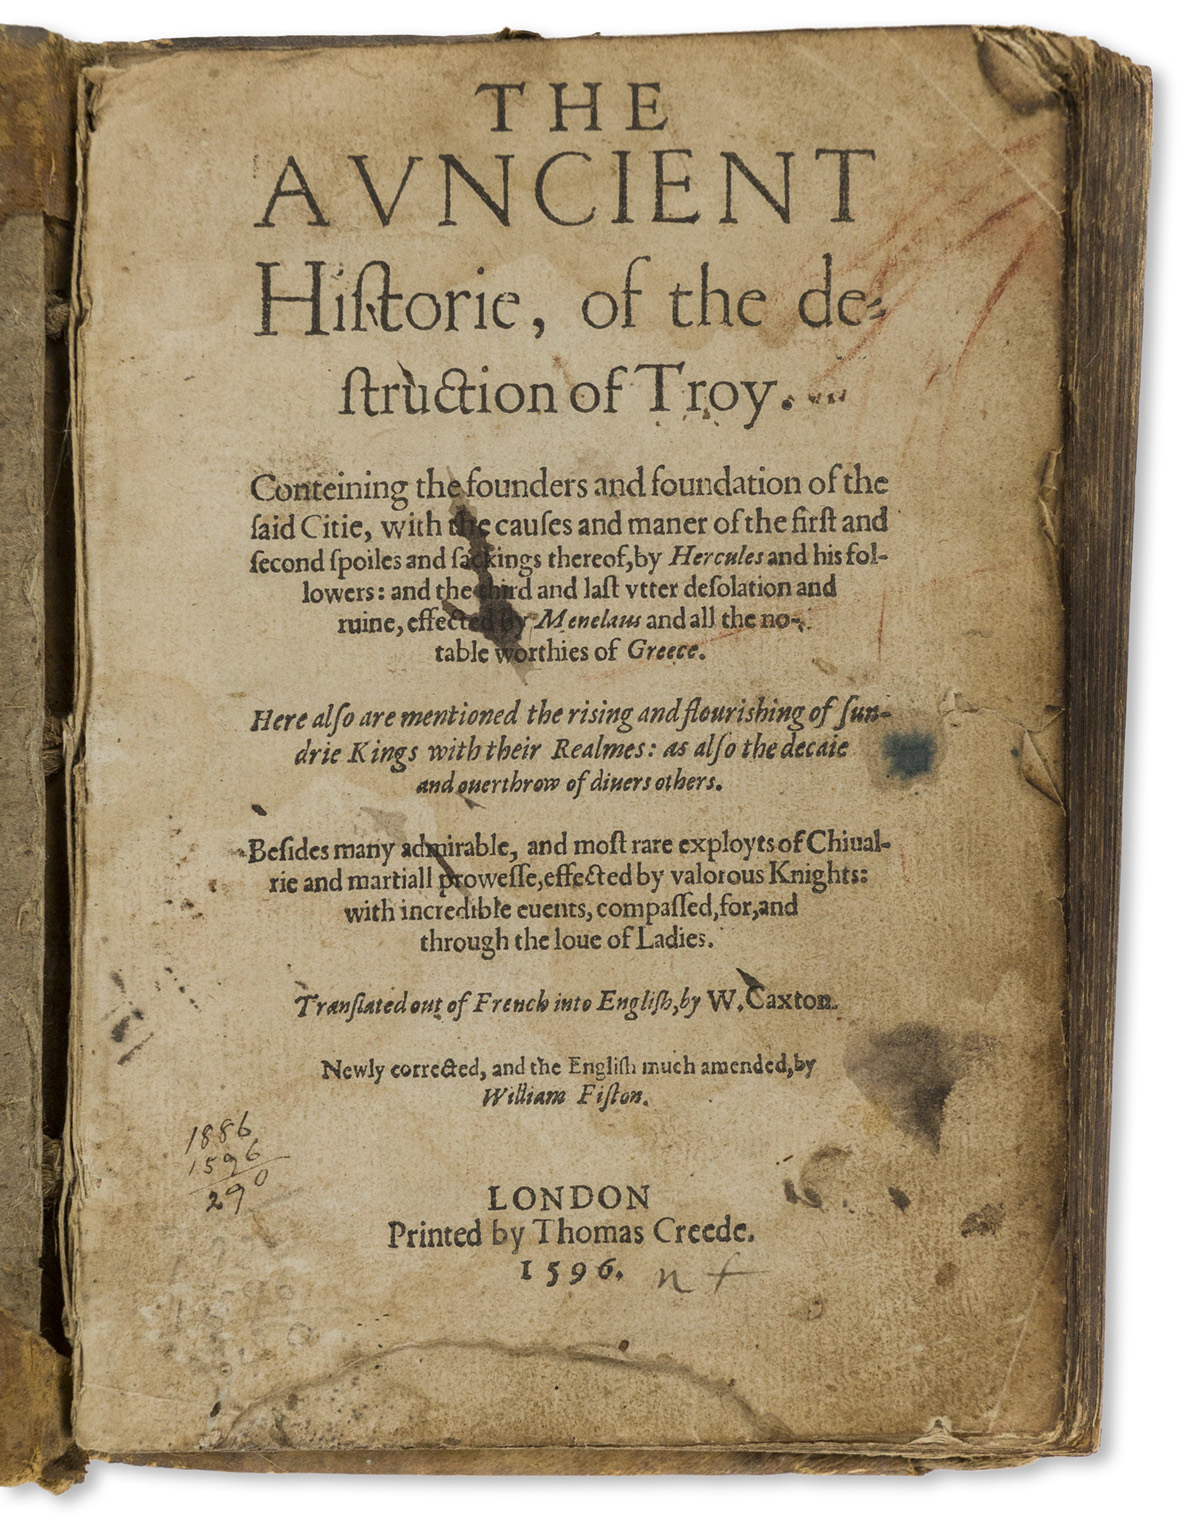 Lefèvre, Raoul (active 1460) trans. William Caxton (1422-1491) The Avncient Historie, of the Destruction of Troy.